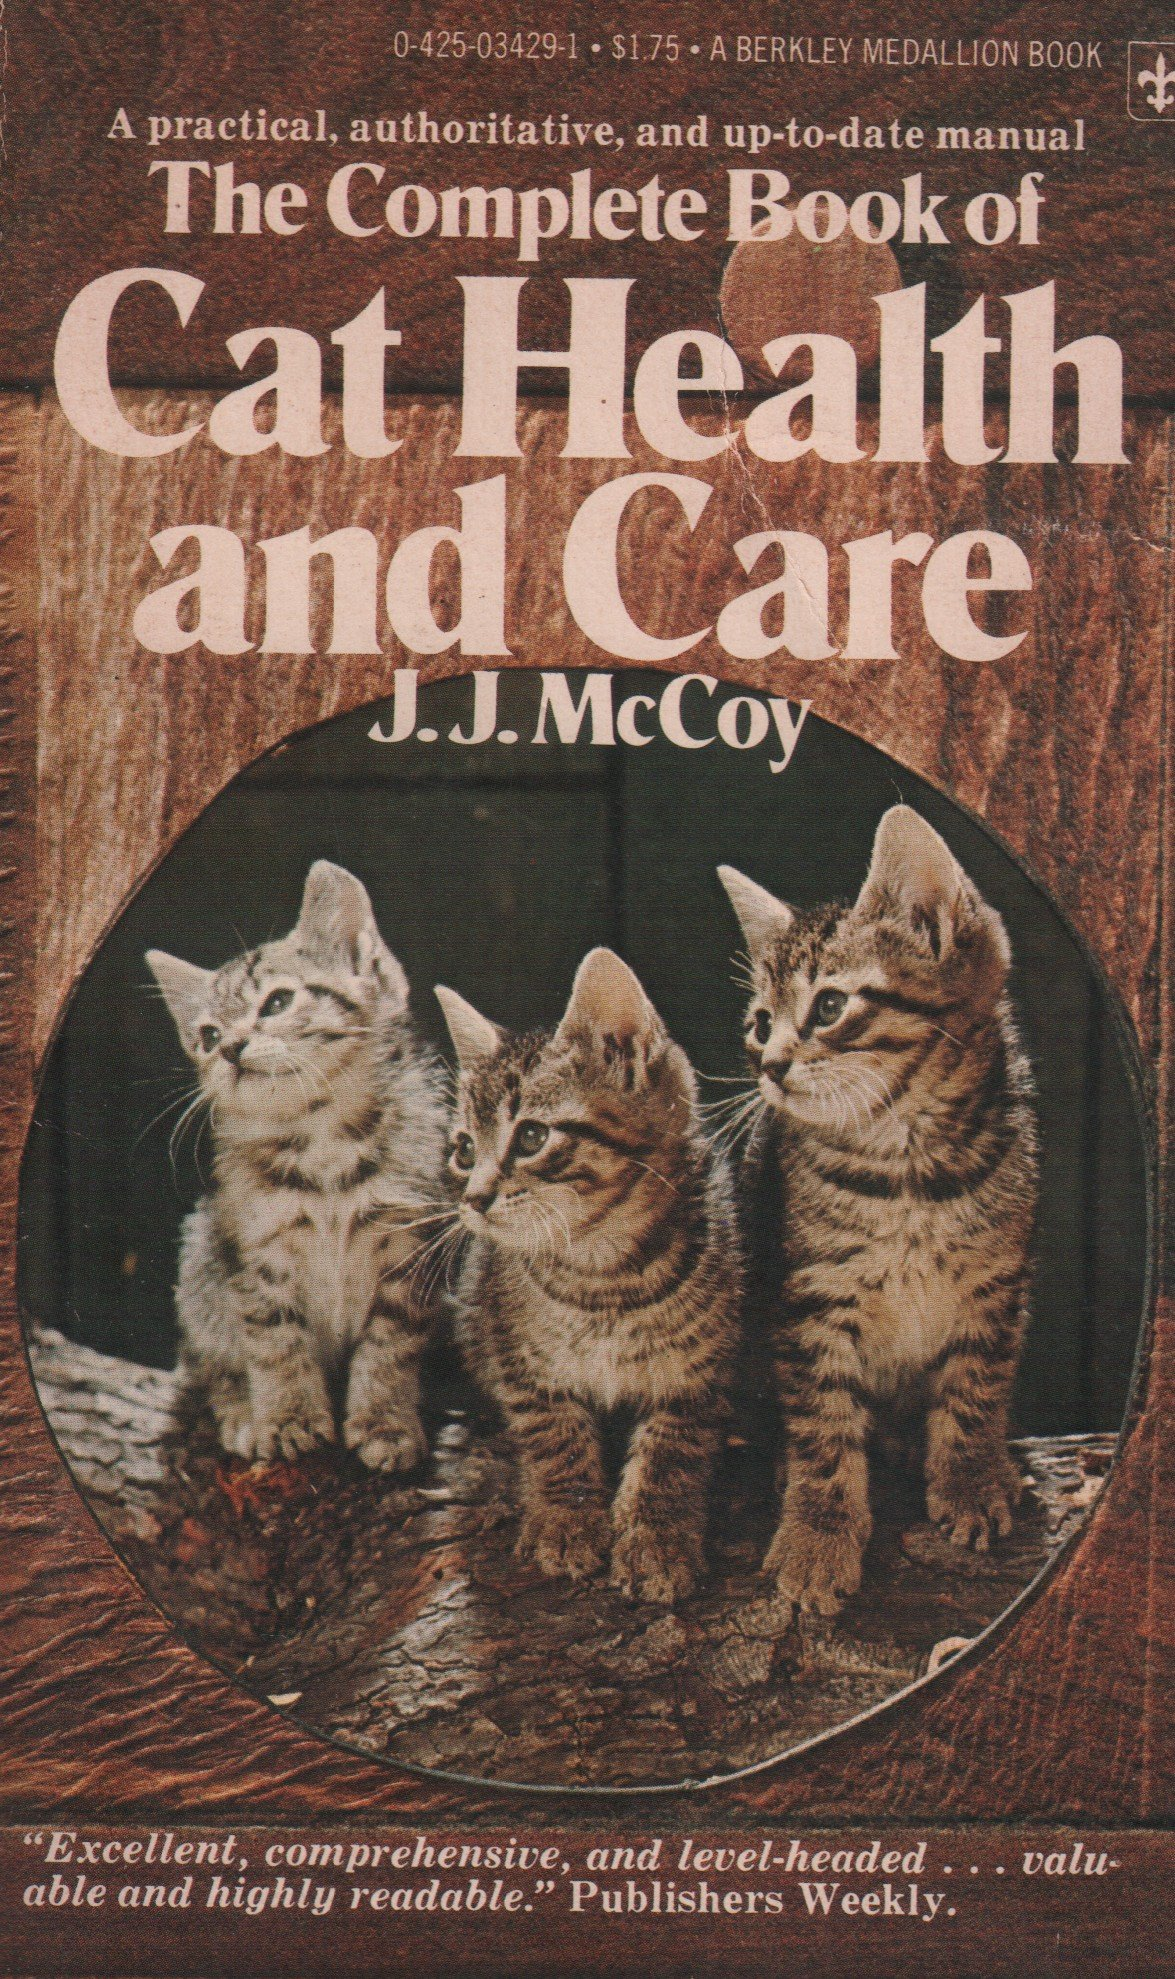 The Complete Book of Cat Health and Care